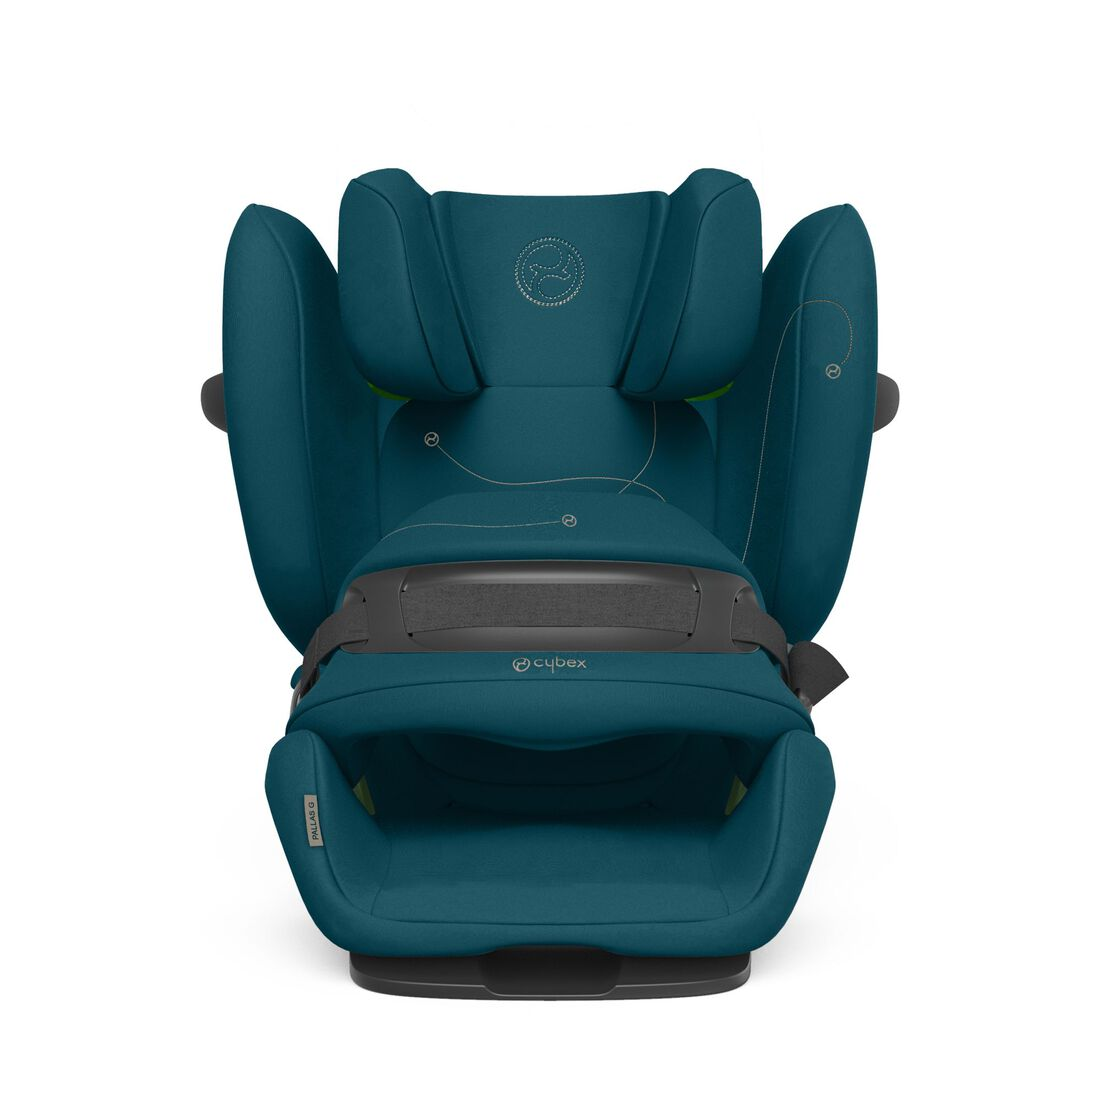 CYBEX Pallas G i-Size - River Blue in River Blue large image number 2